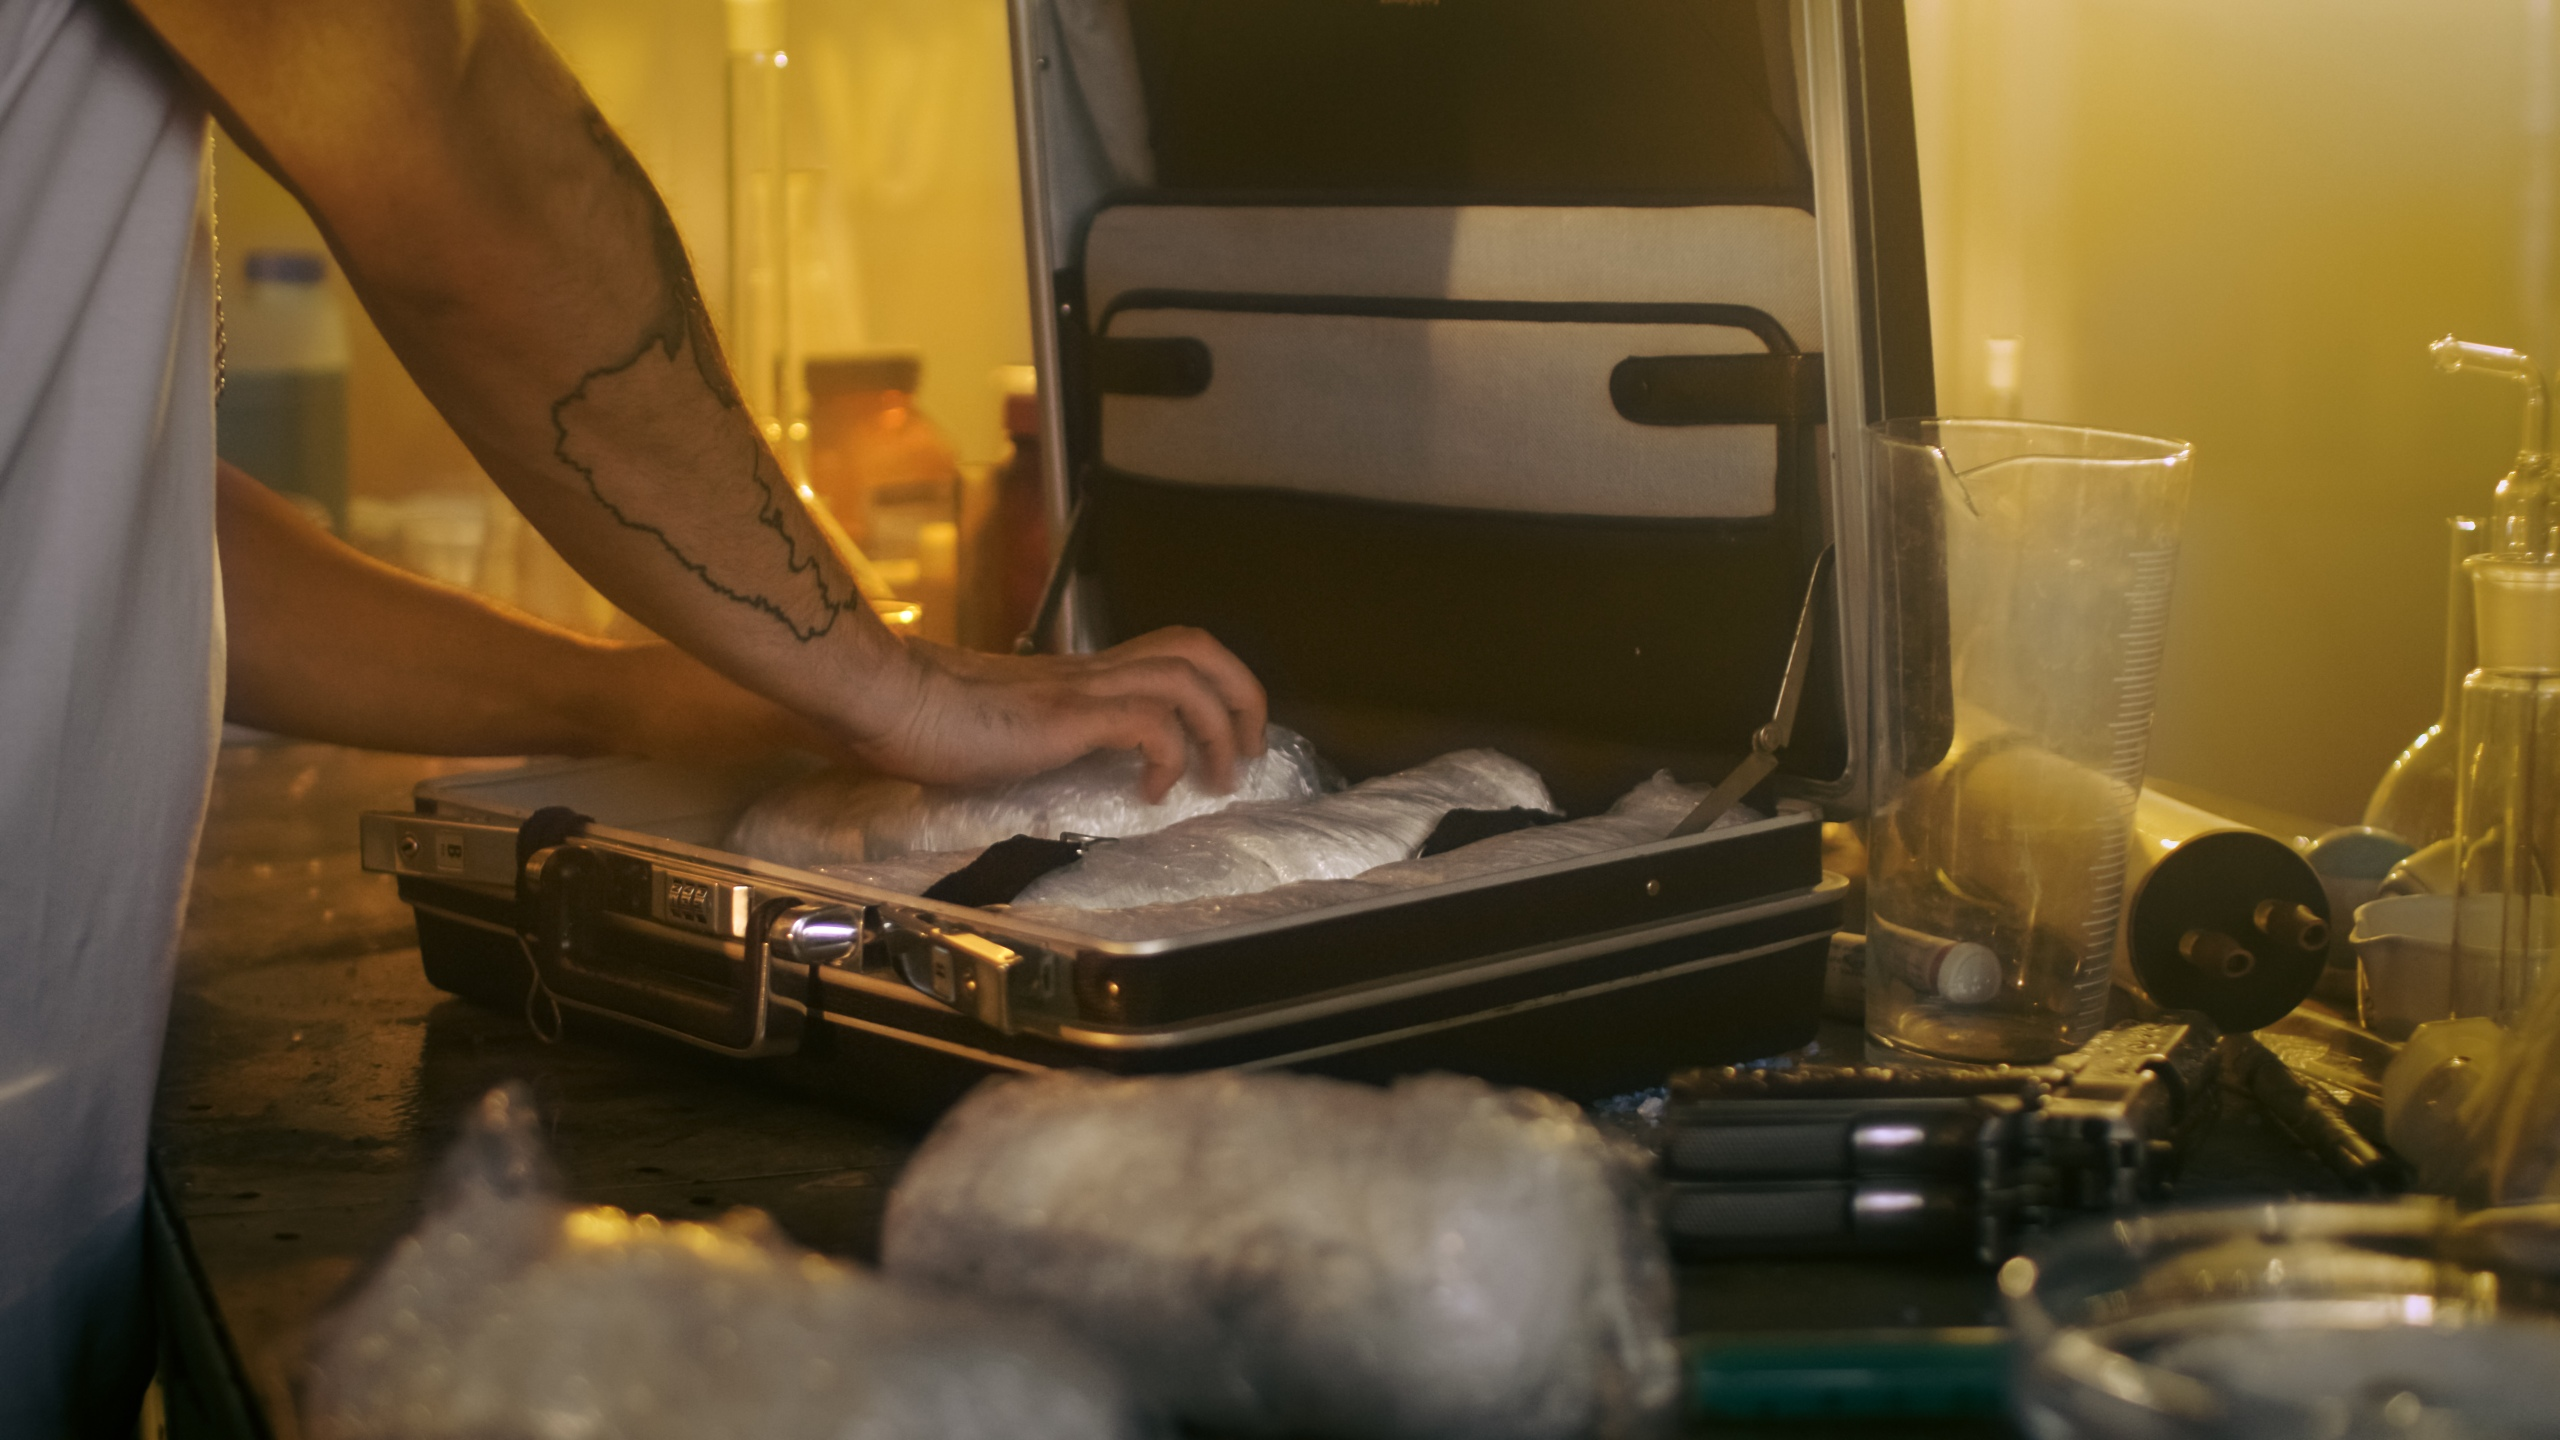 A man places brick packs filled with drugs into a suitcase. (Credit: iStock / Getty Images Plus)